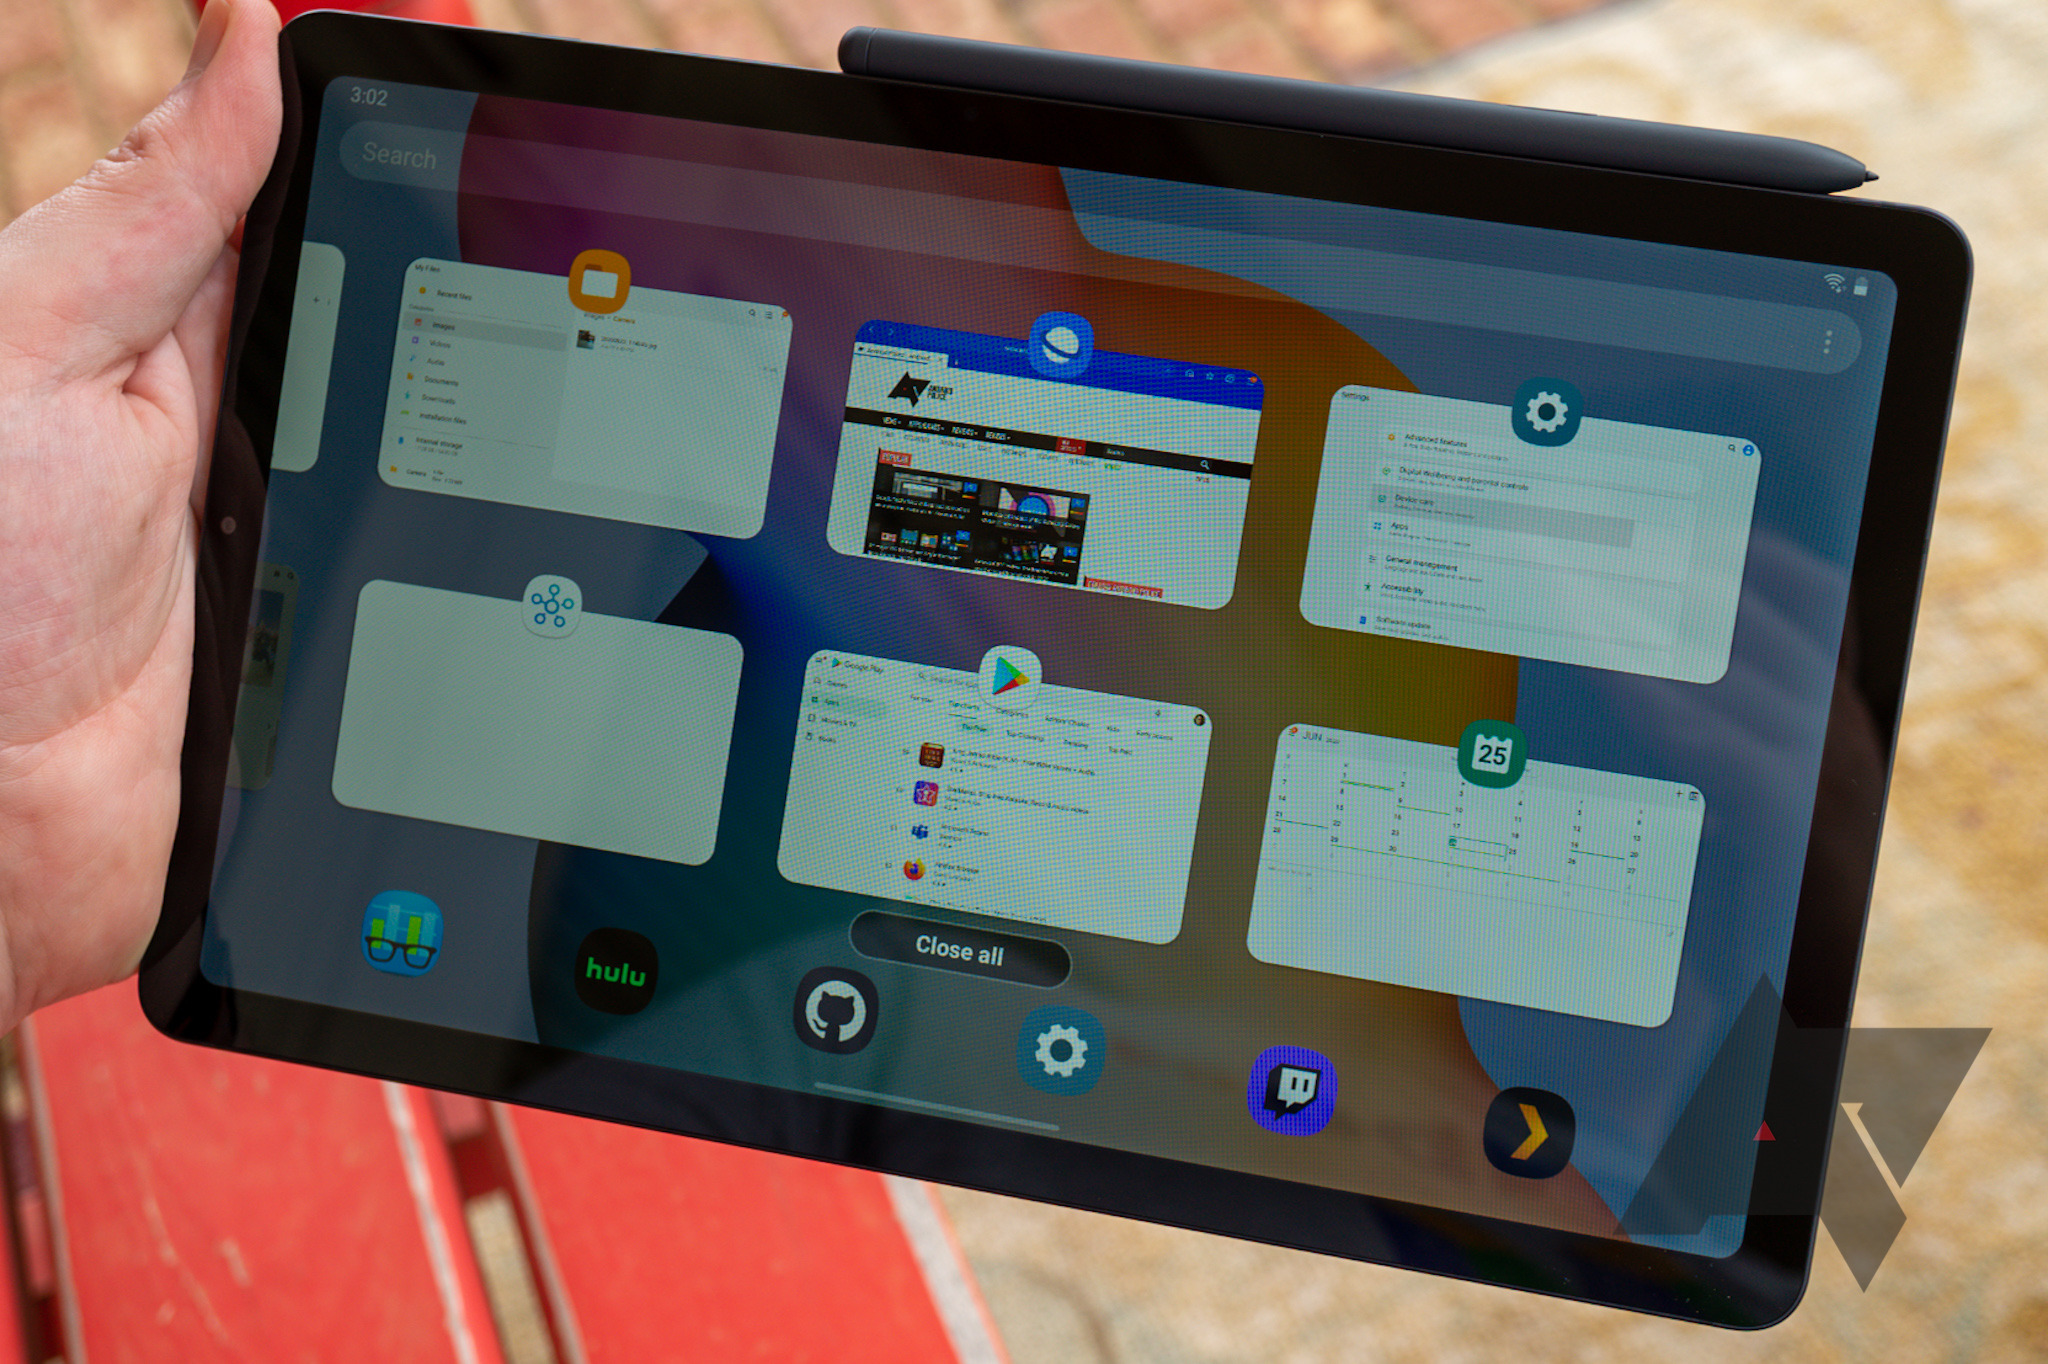 These are the best applications for Android tablets